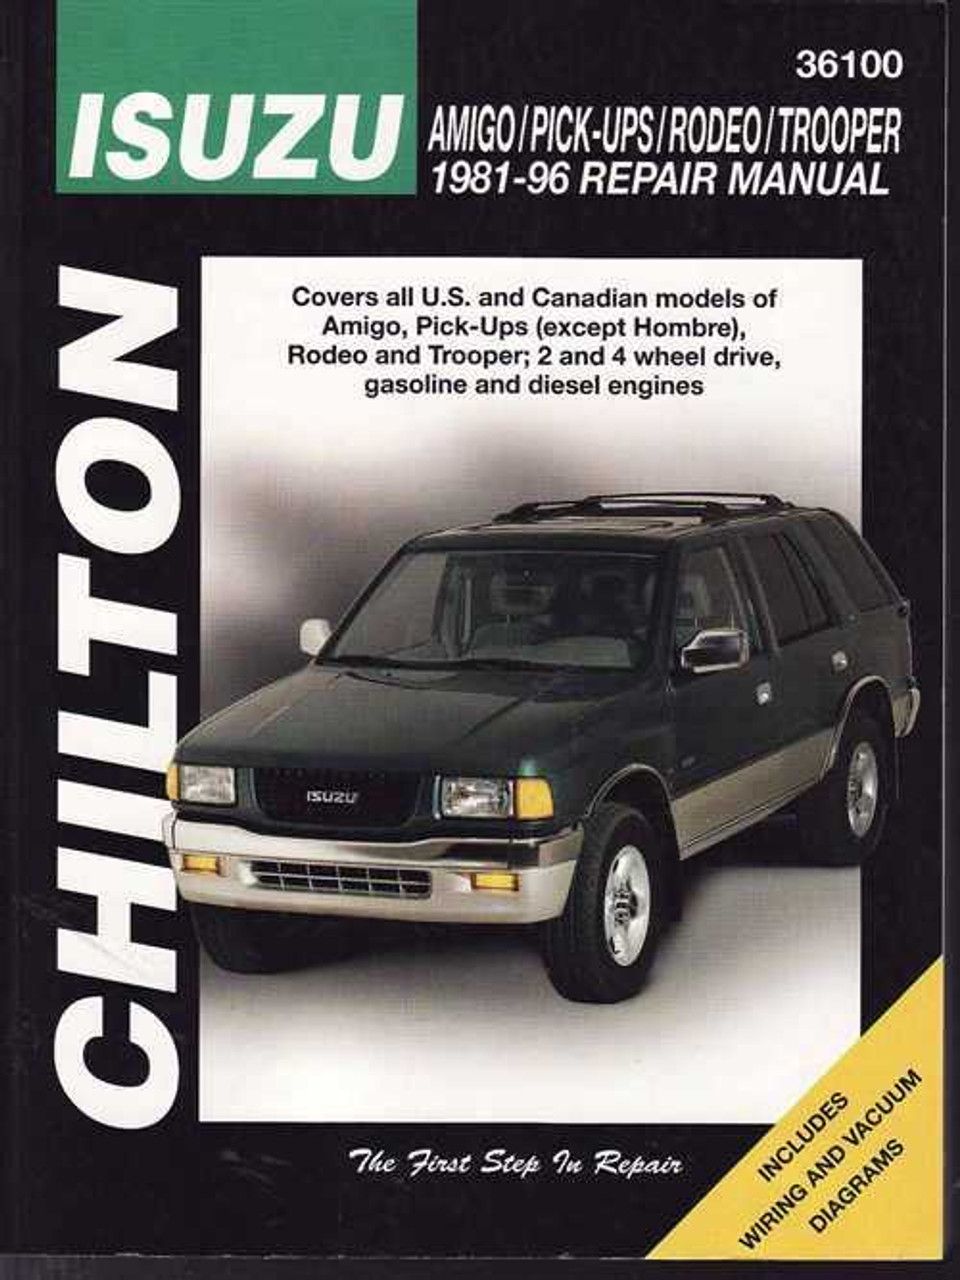 holden jackaroo amp rodeo isuzu 1981 1996 workshop manual rh automotobookshop com au 2007 Holden Rodeo 1990 Holden Rodeo